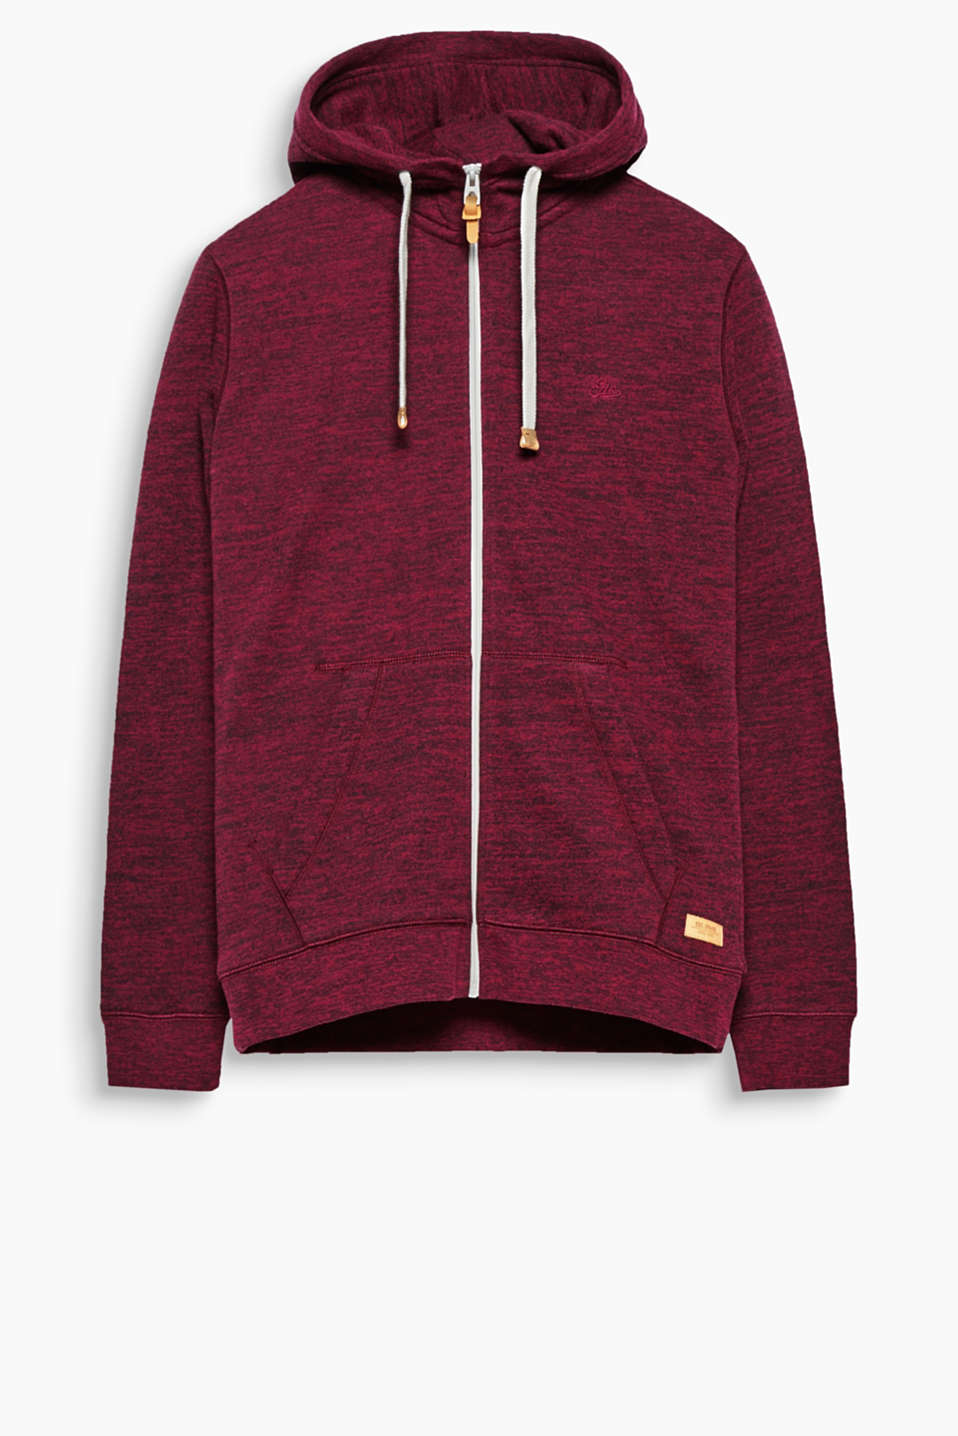 An urban classic! This melange sweatshirt hoodie impresses with its sporty details.